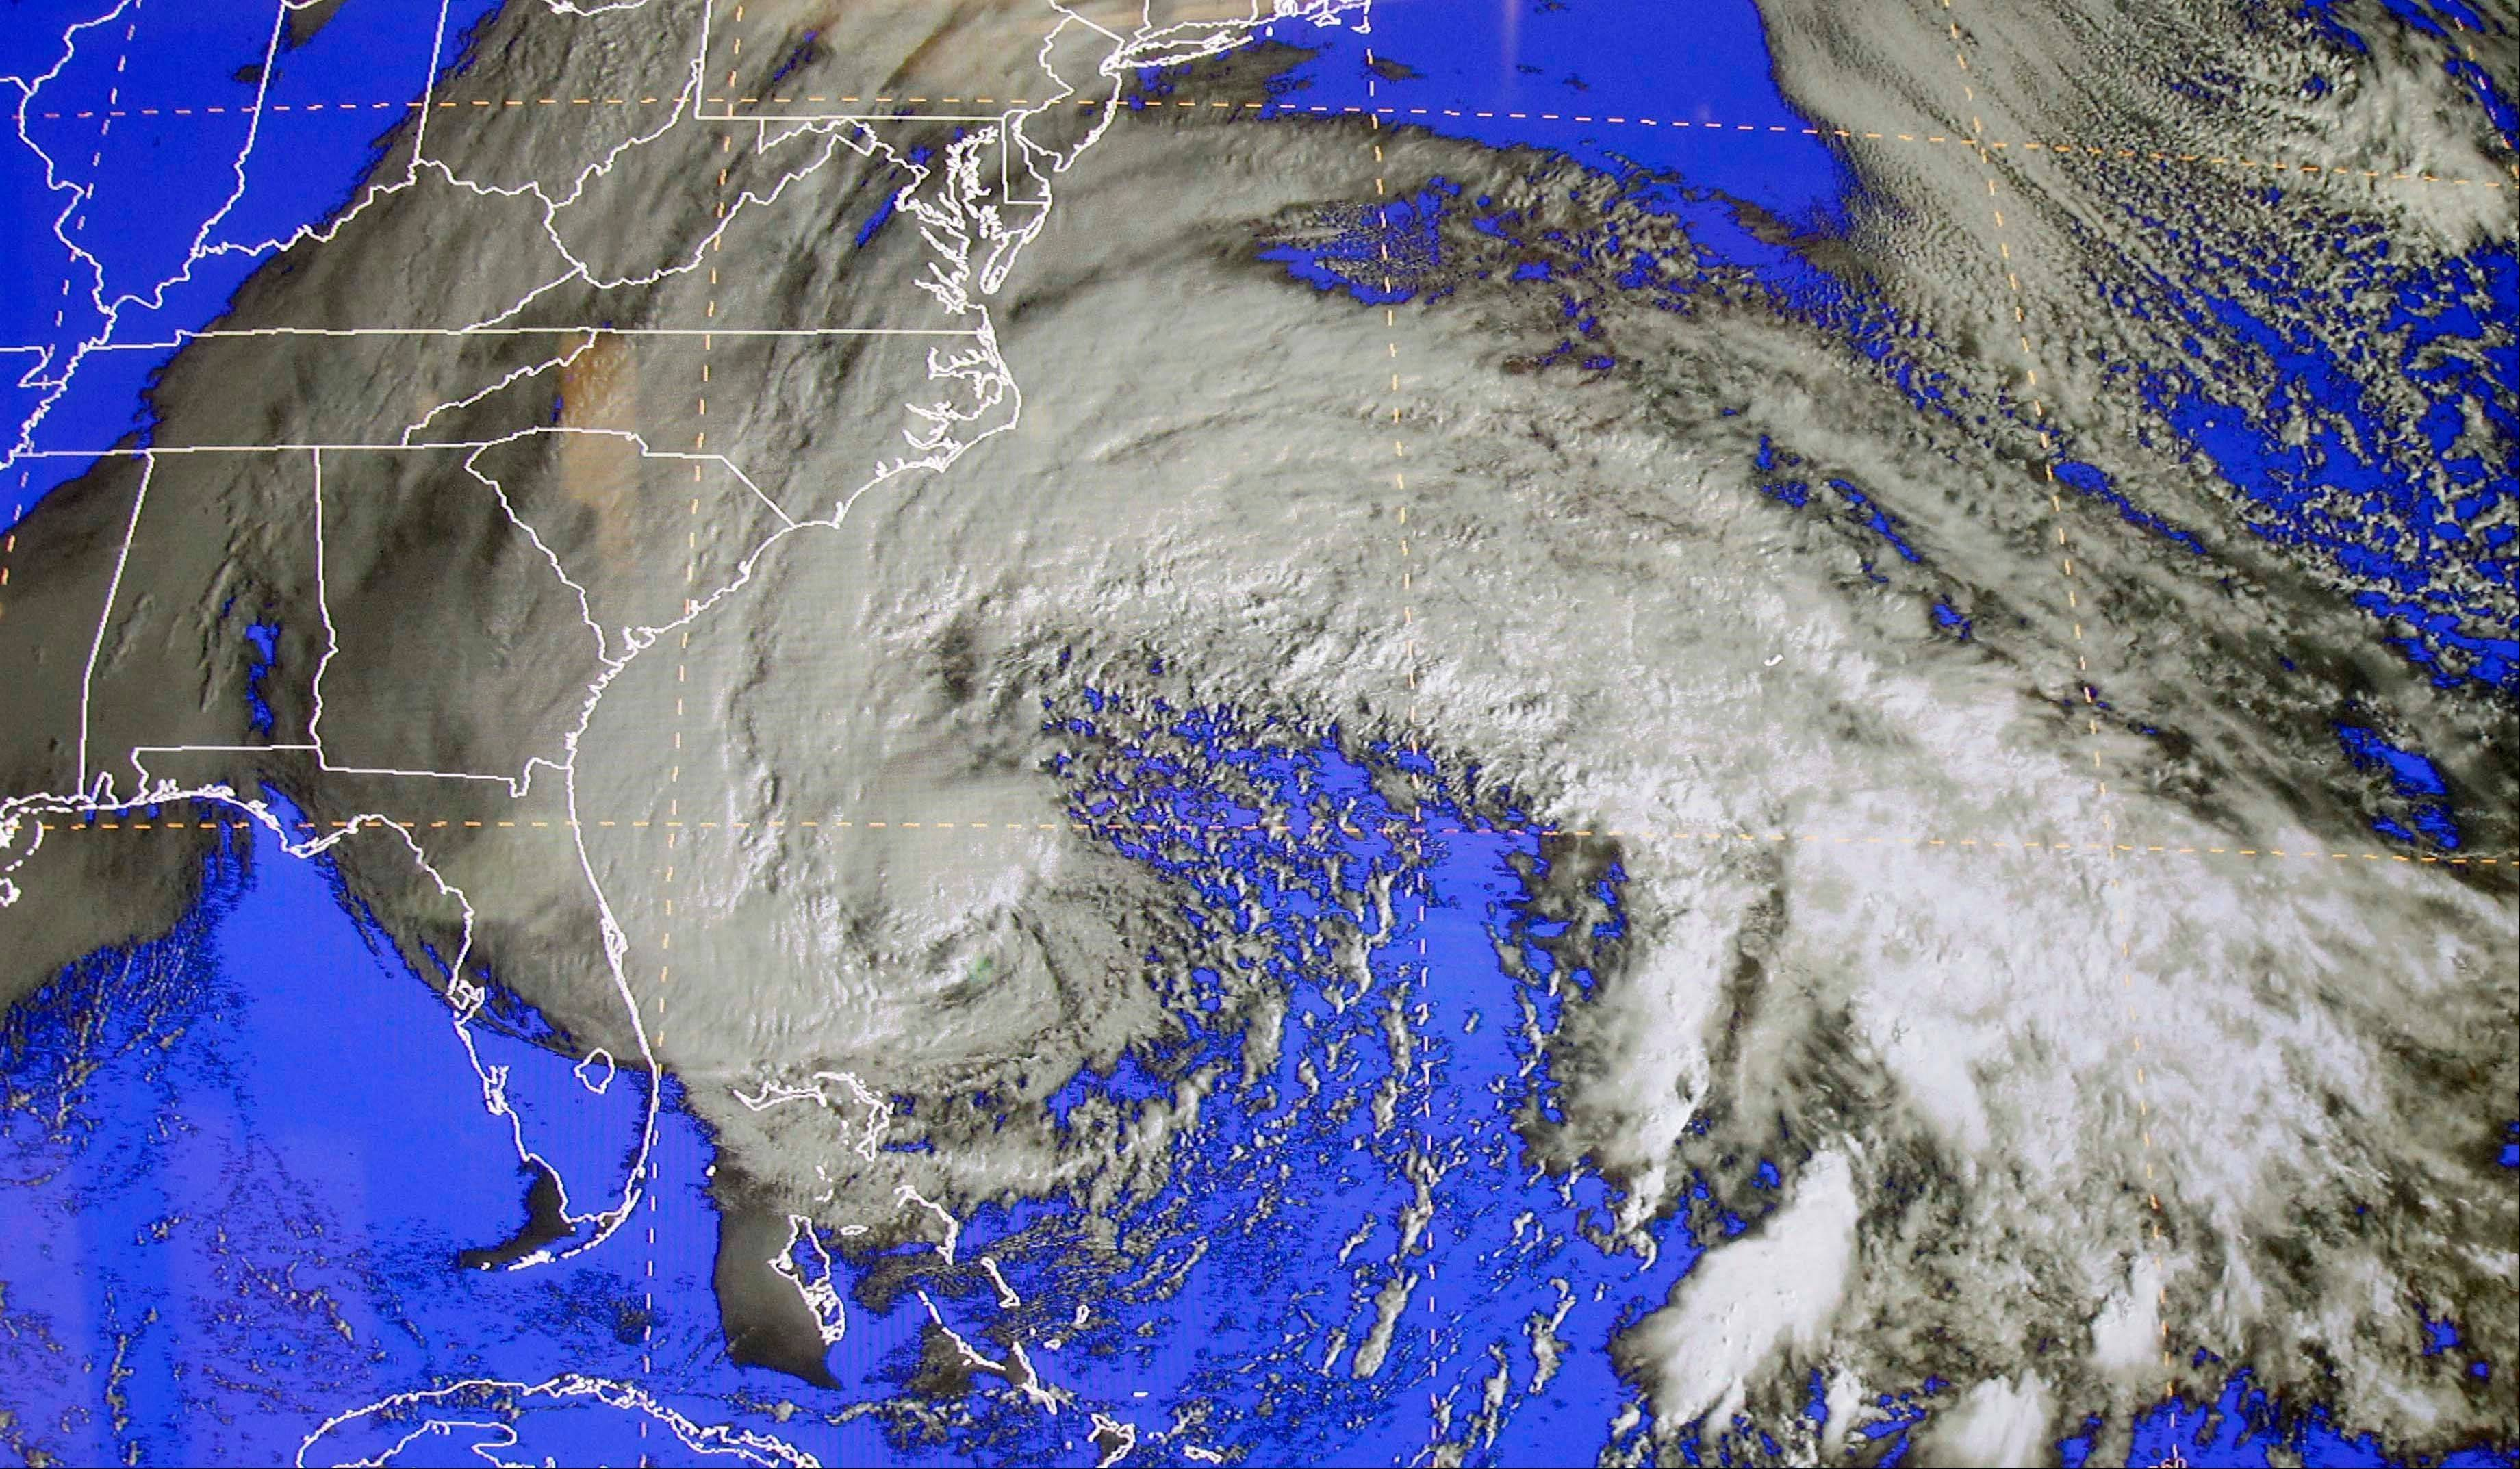 A satellite image of Sandy on Saturday at the National Hurricane Center in Miami. Early Saturday, the storm was about 335 miles southeast of Charleston, S.C. Tropical storm warnings were issued for parts of Florida's East Coast, along with parts of coastal North and South Carolina and the Bahamas. Tropical storm watches were issued for coastal Georgia and parts of South Carolina, along with parts of Florida and Bermuda. Sandy is projected to hit the Atlantic Coast early Tuesday.